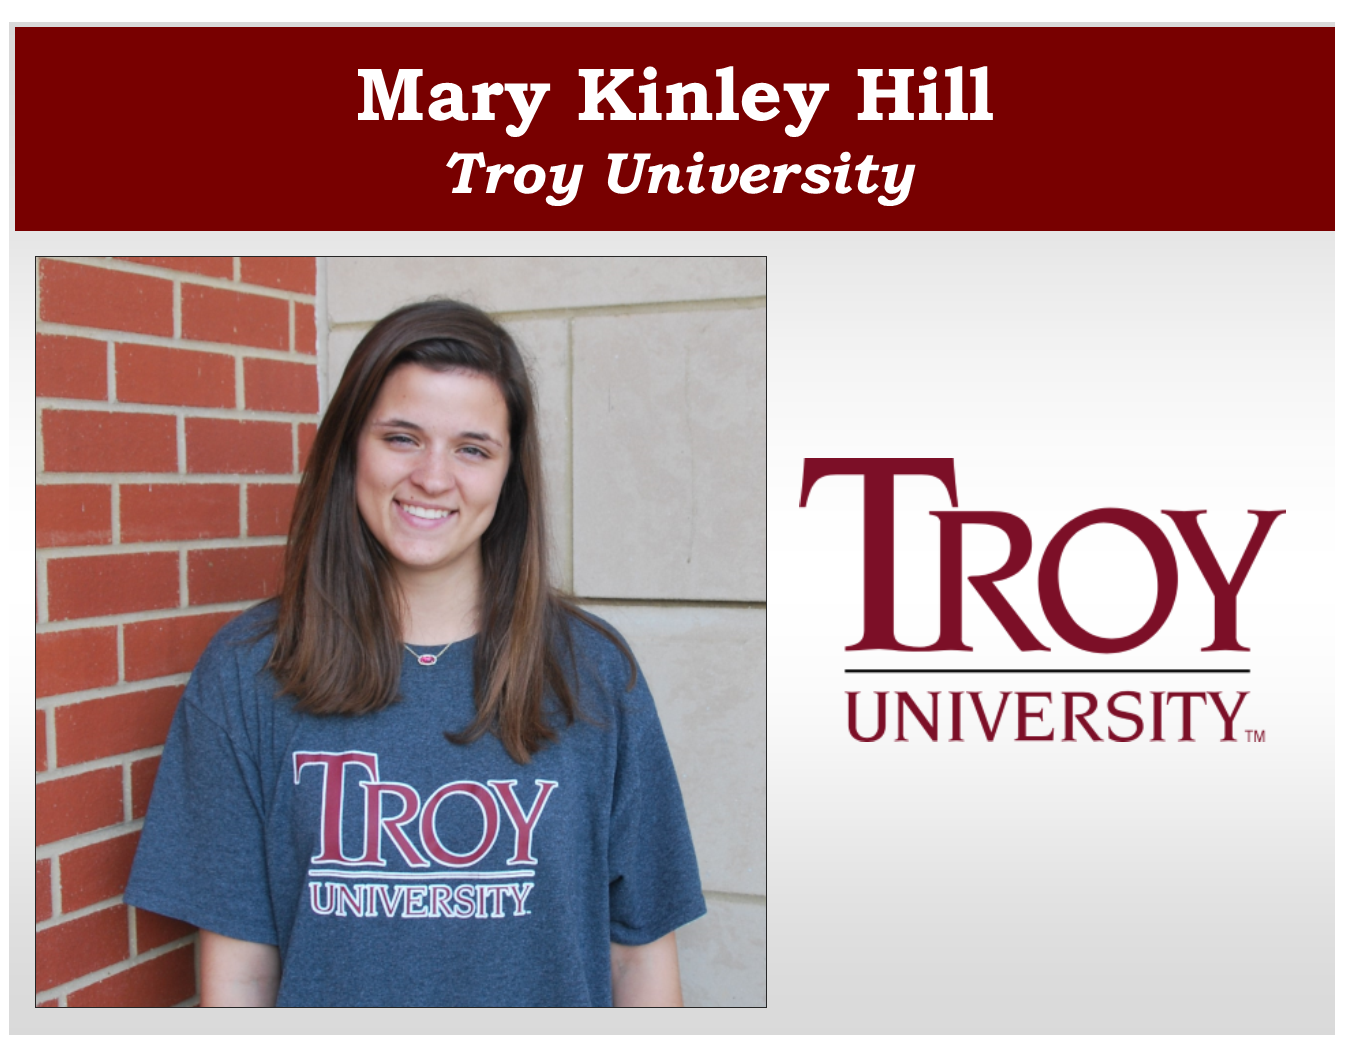 Mary Kinley Hill